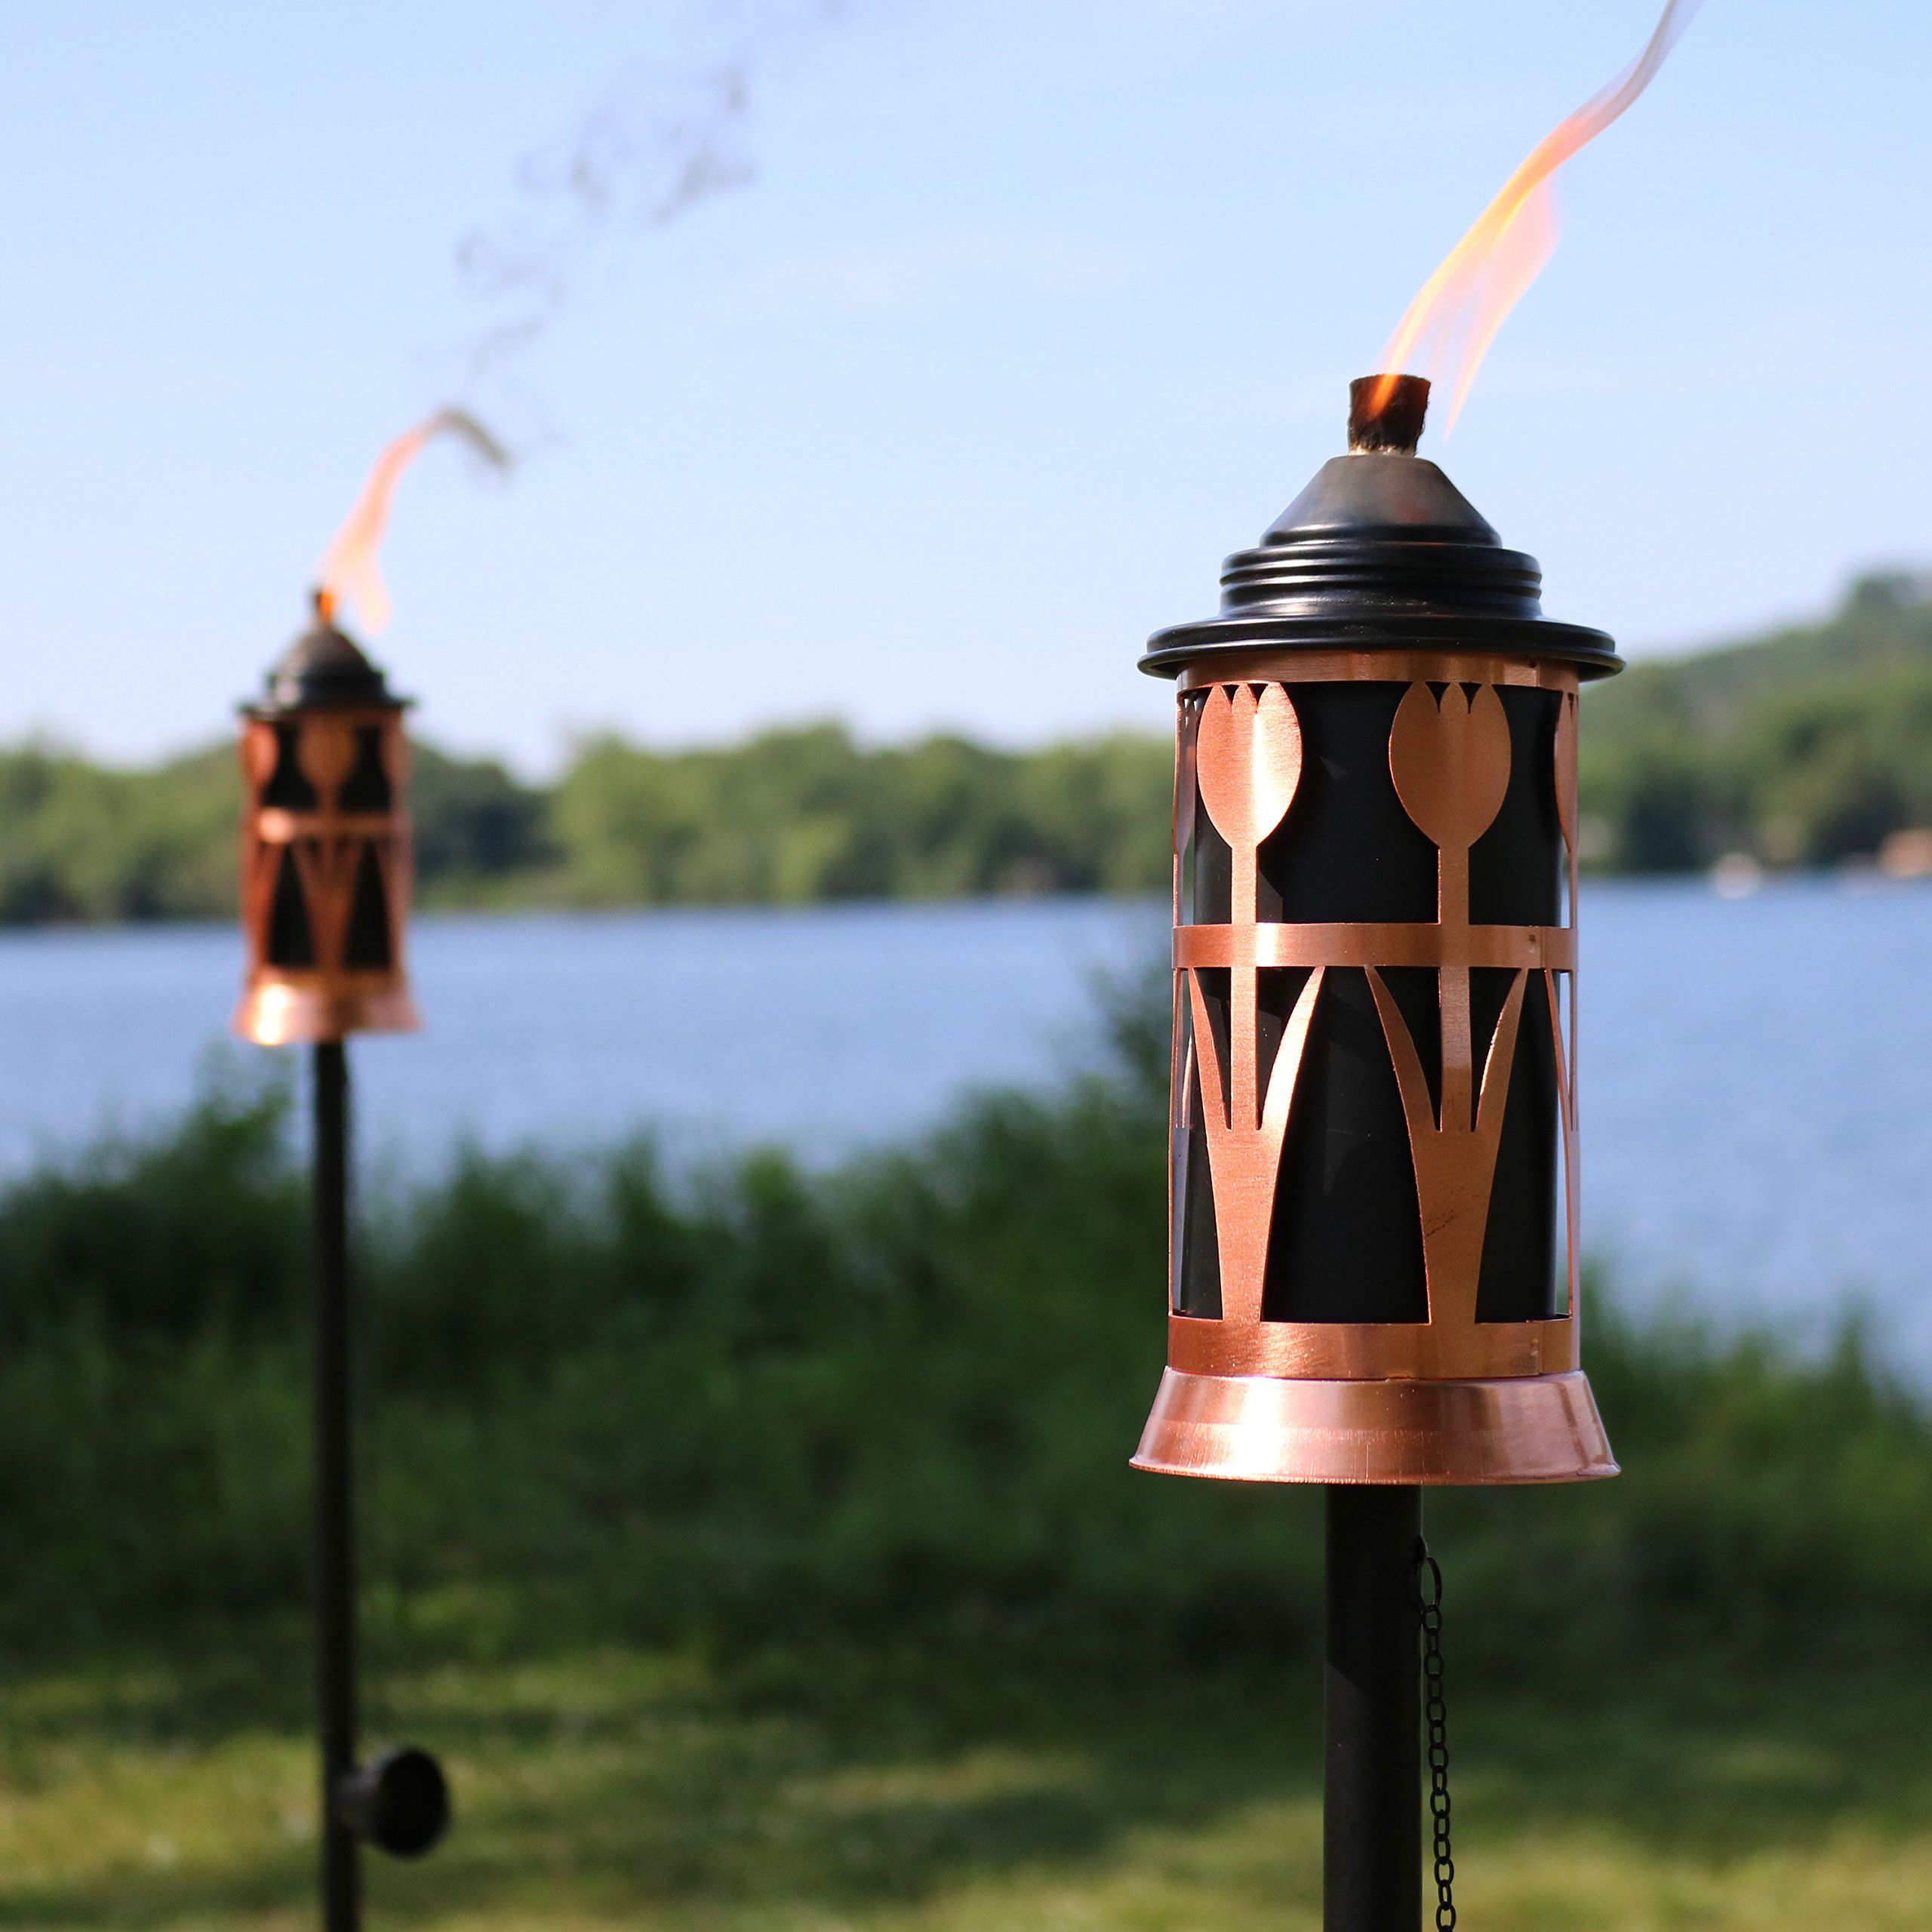 Sunnydaze Steel Outdoor Torch Jar with Tulip Design, Includes Snuffer, 22- to 64-Inch Adjustable Height, Set of 4, Copper/Black by Sunnydaze Decor (Image #4)